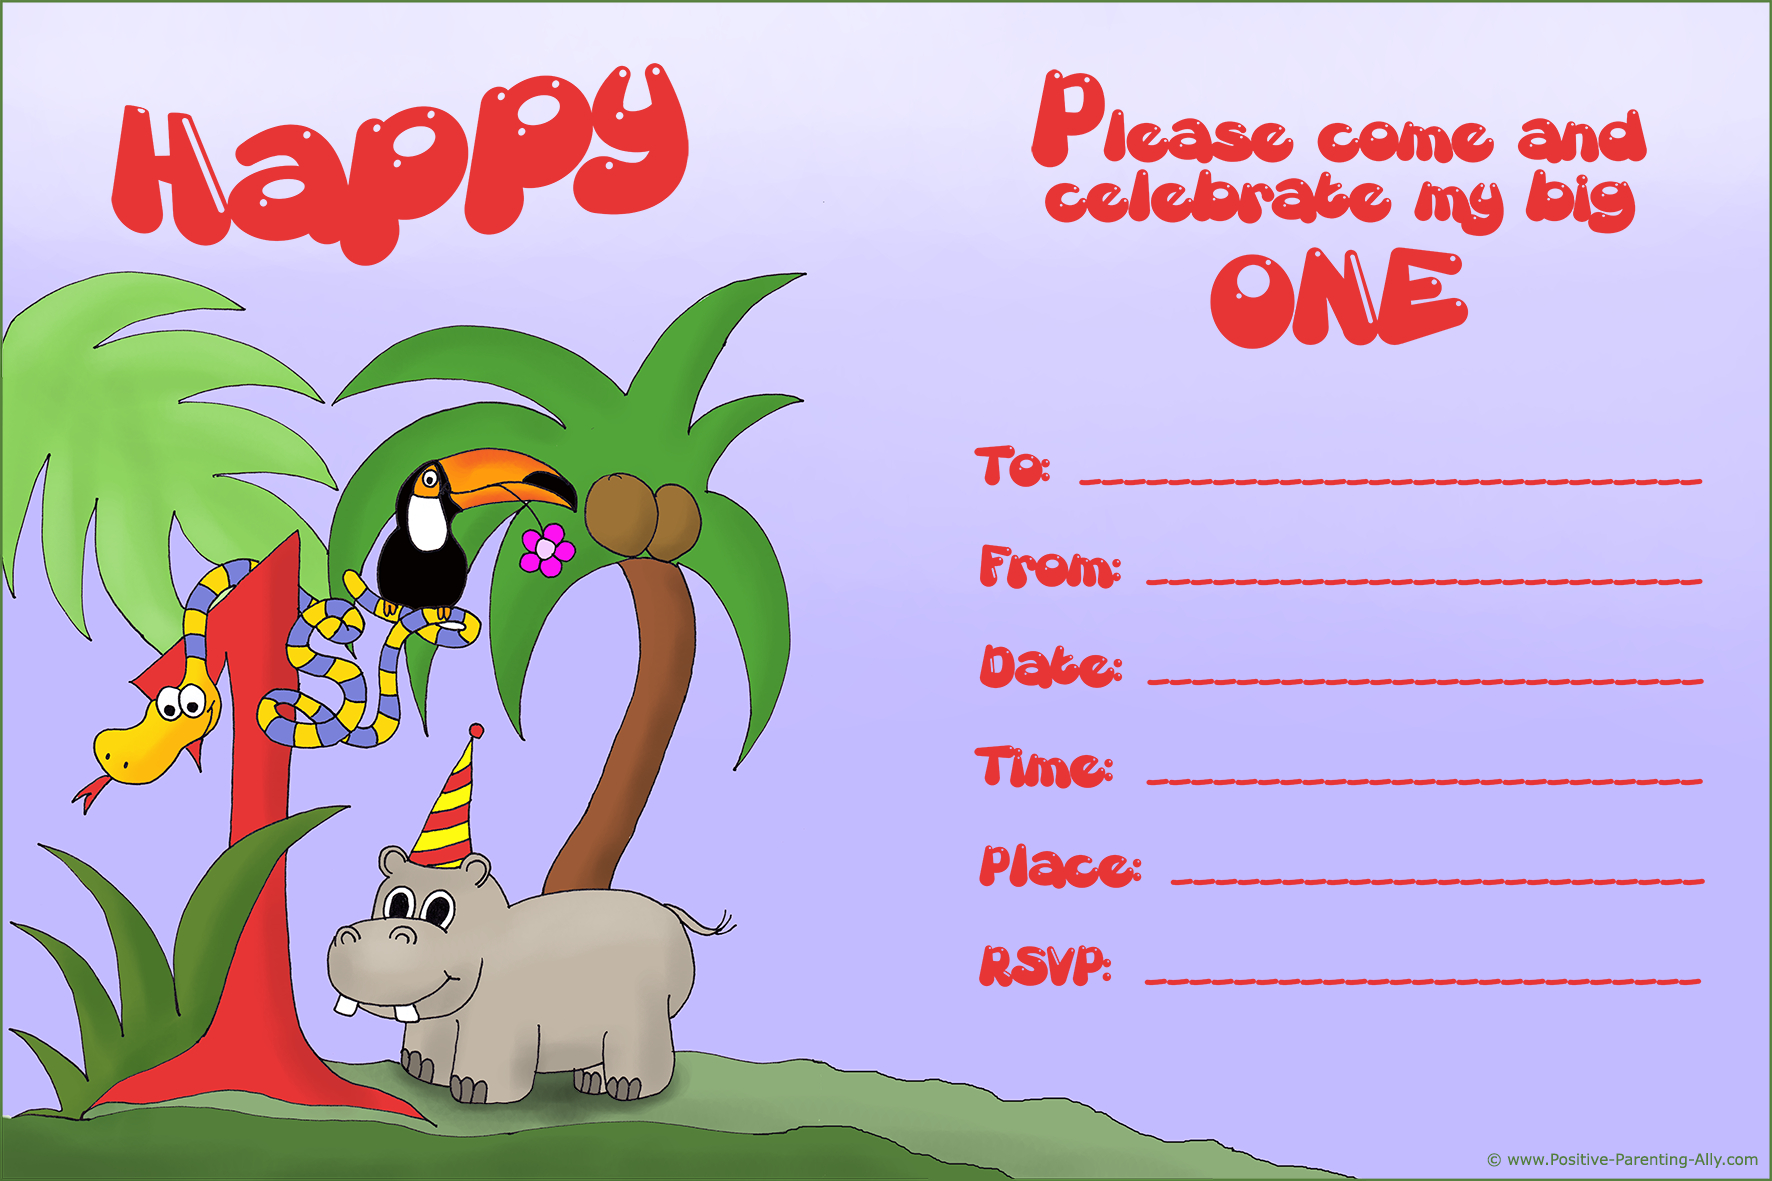 Printable 1st birthday invitation with jungle theme with a snake, hippo and tucano. Free and ready to print.